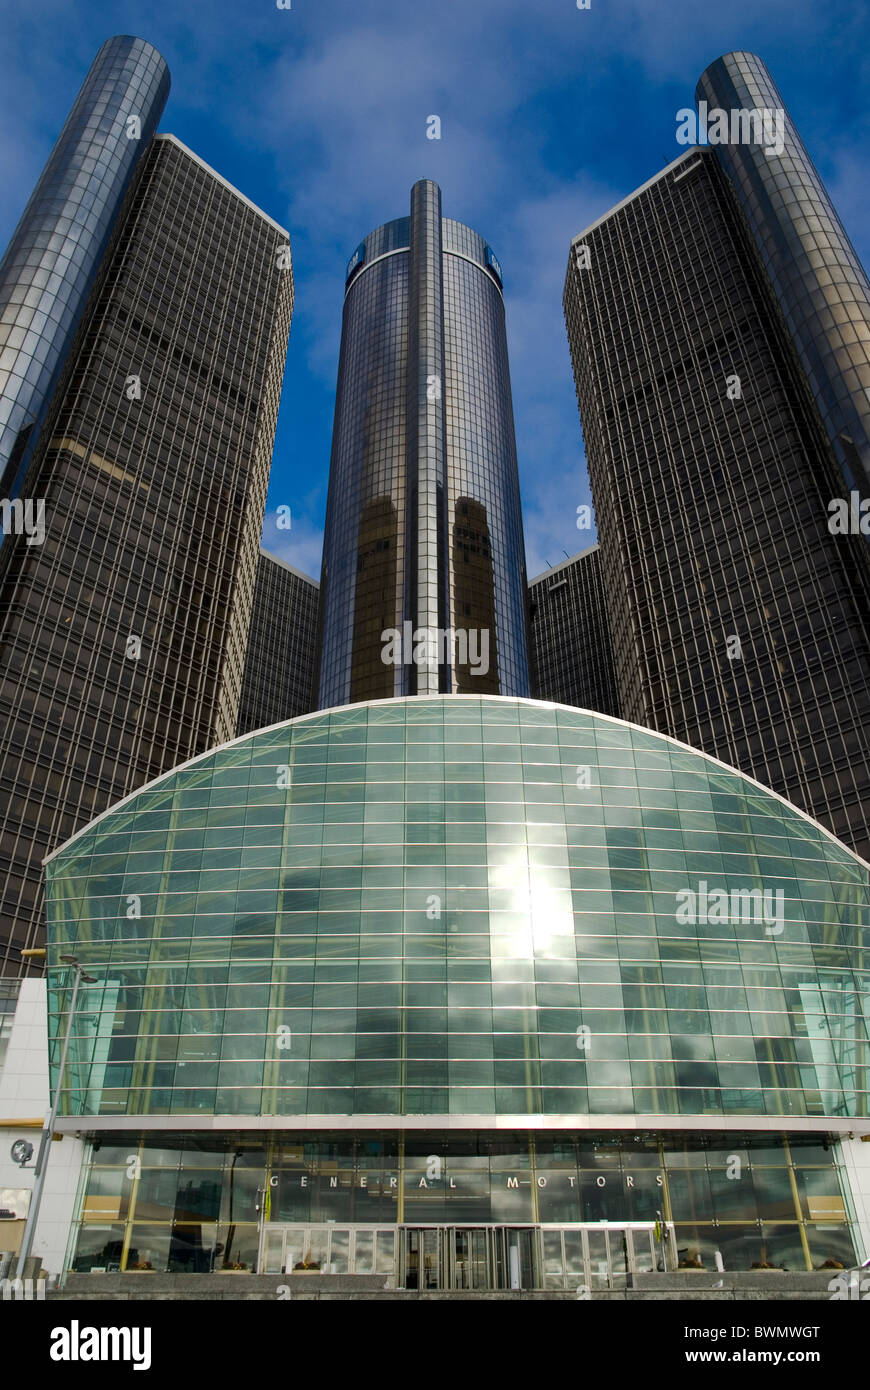 Le GM Renaissance Center est un groupe de sept gratte-ciel interconnectés dans le centre-ville de Detroit, Photo Stock